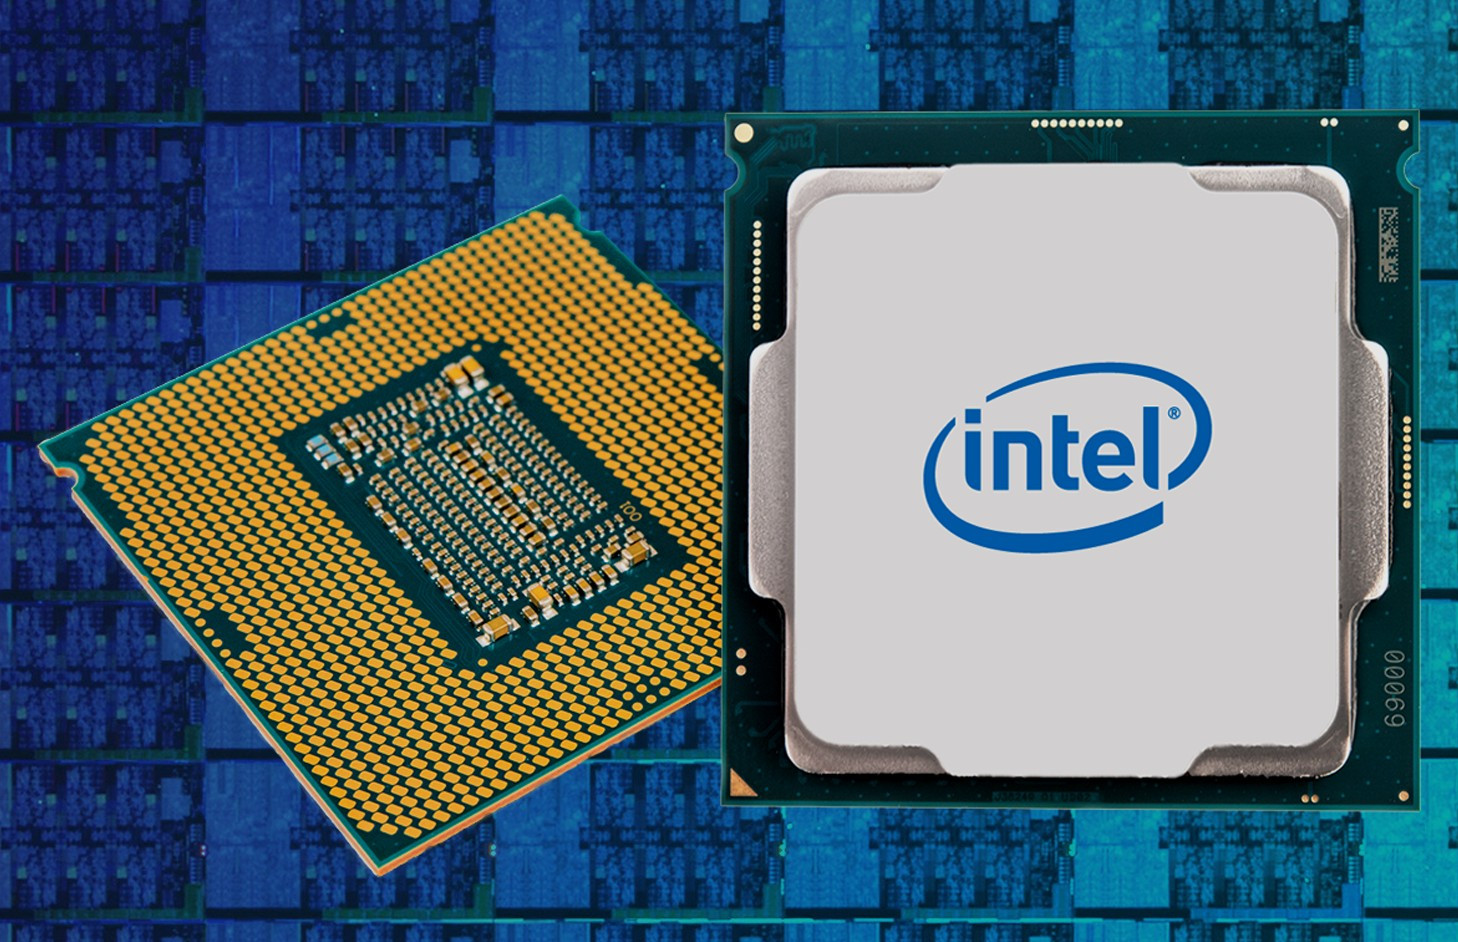 Intel posts Z390 chipset documents on its website